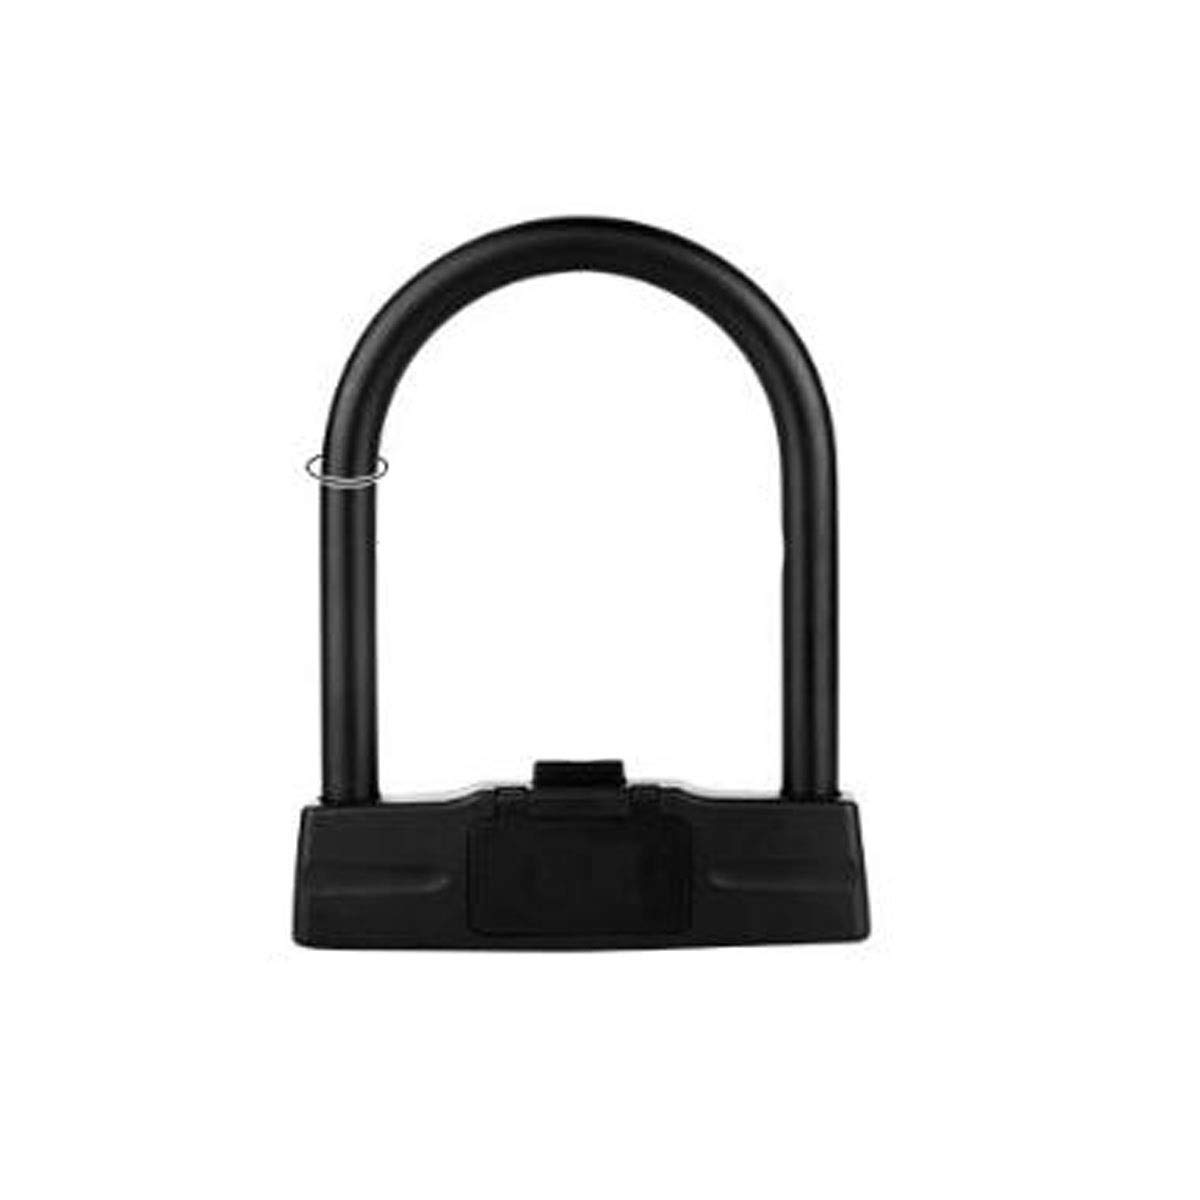 MINGSHENGWANGLUO Comfortable and Practical U-Lock for Mountain Bikes, Electric Cars, Motorcycles, Size: 7.281.2 Inches, Color: Black, Gray Electric car Lock Anti-Hydraulic Shear U-Lock Anti by MINGSHENGWANGLUO